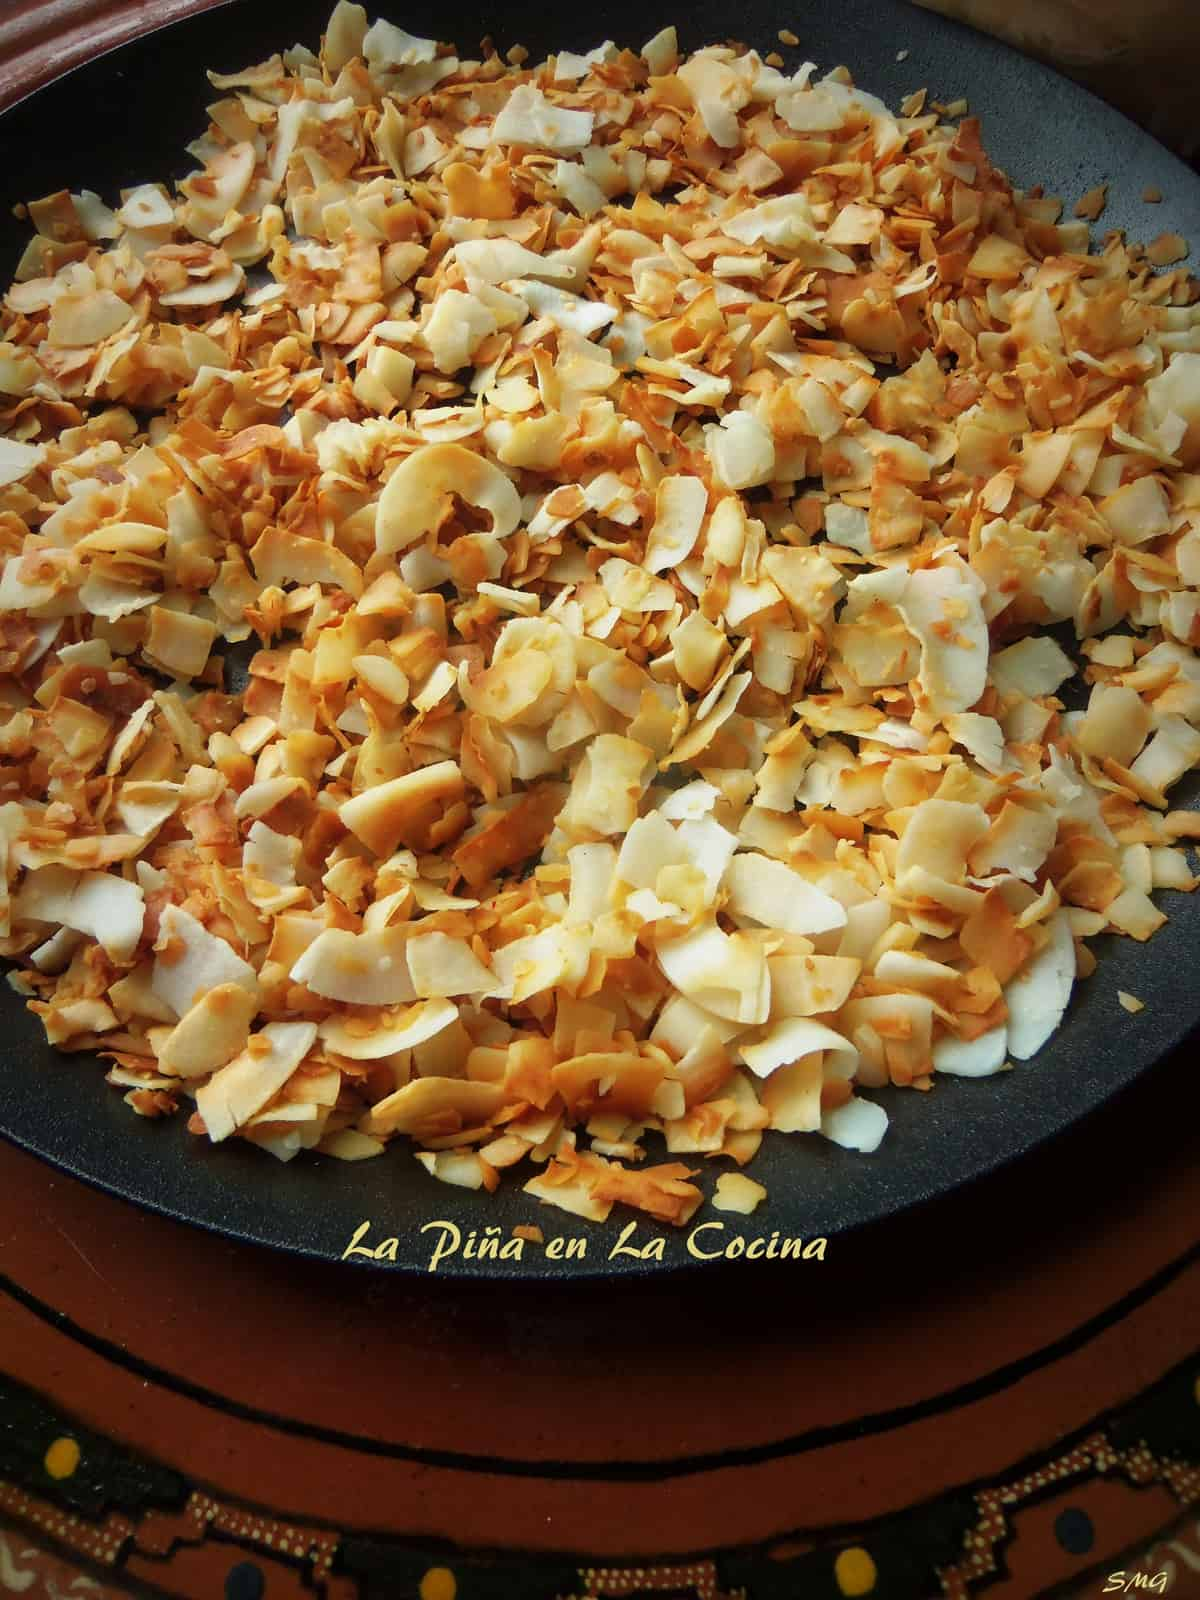 I prefer to use unsweetened coconut for my recipes. My crepe pan worked perfect for toasting.